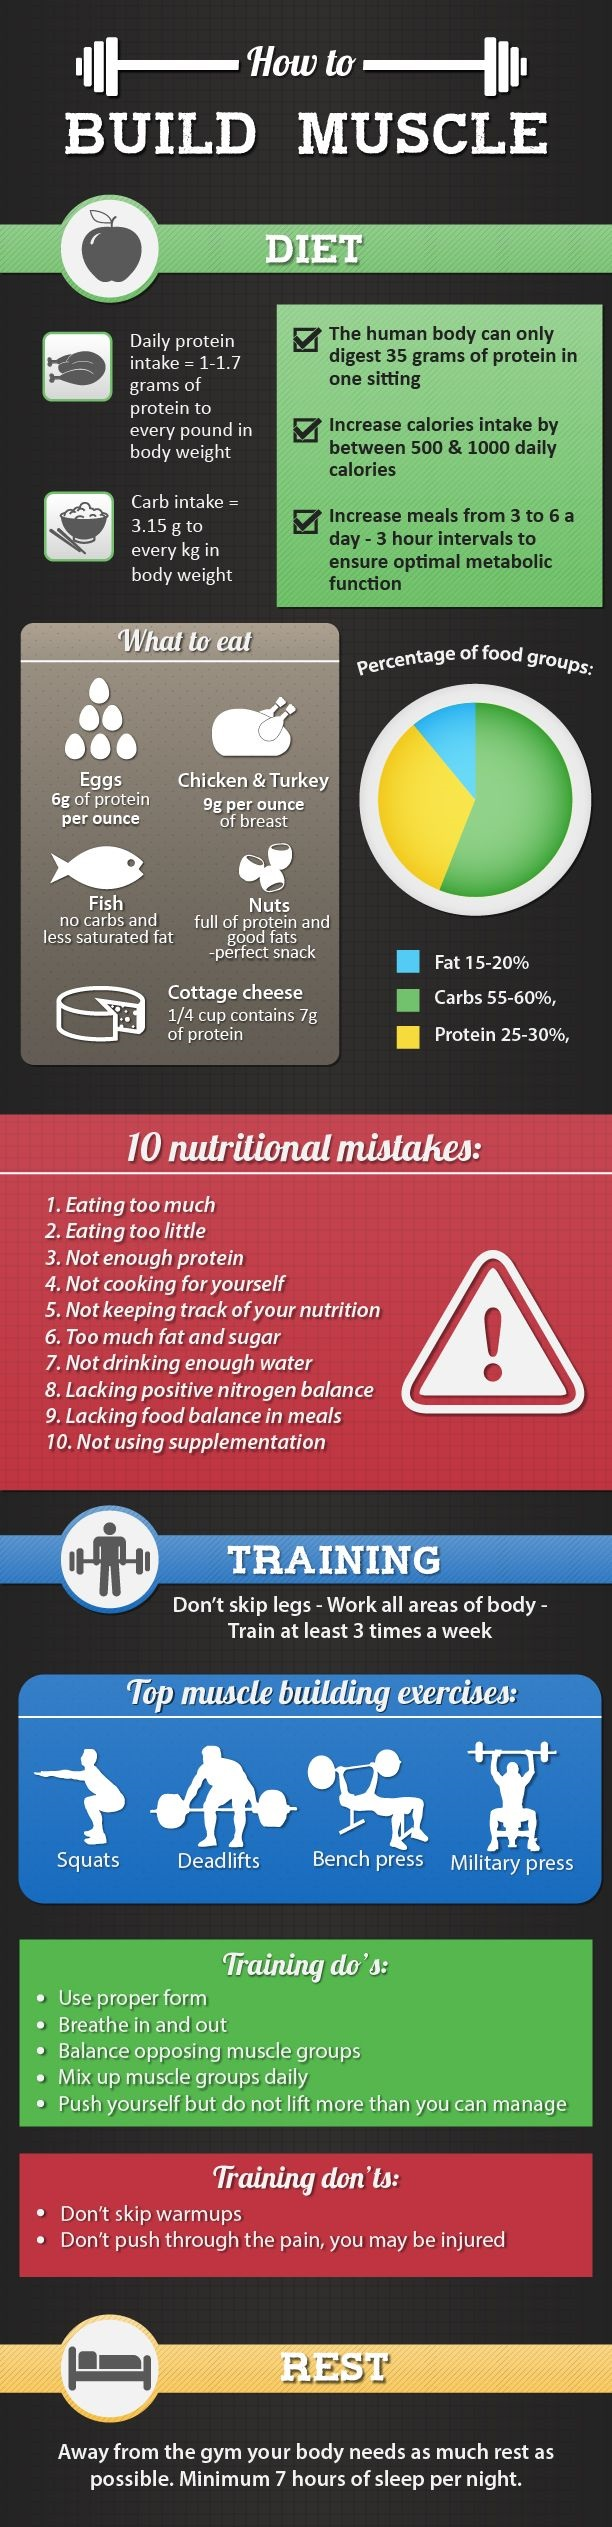 Protein Helps Build Muscle infographics